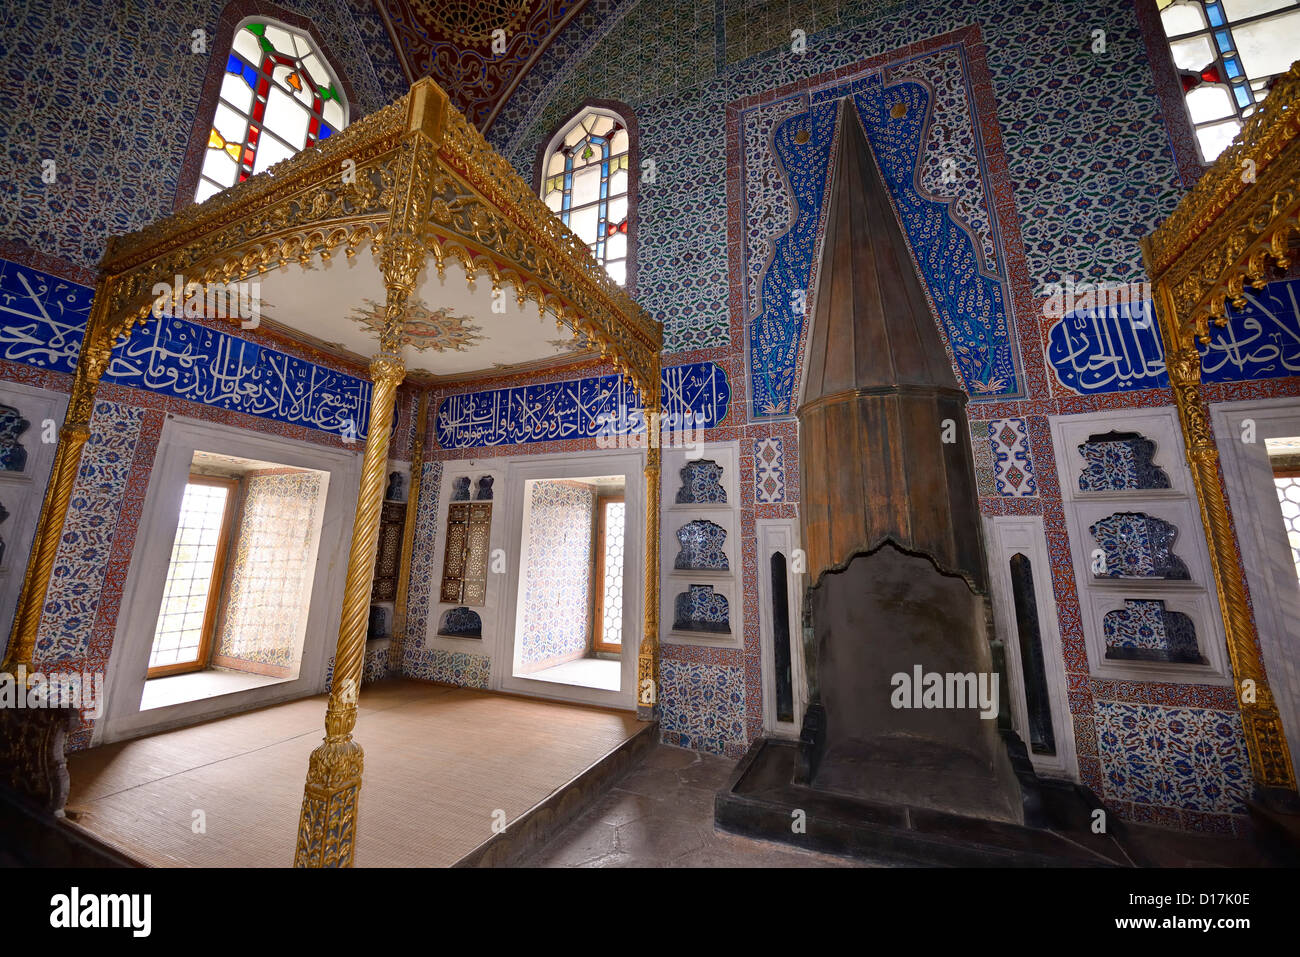 Privy Chamber of Sultan Murat III with beds and fireplace in the Topkapi Palace Harem Istanbul Turkey - Stock Image